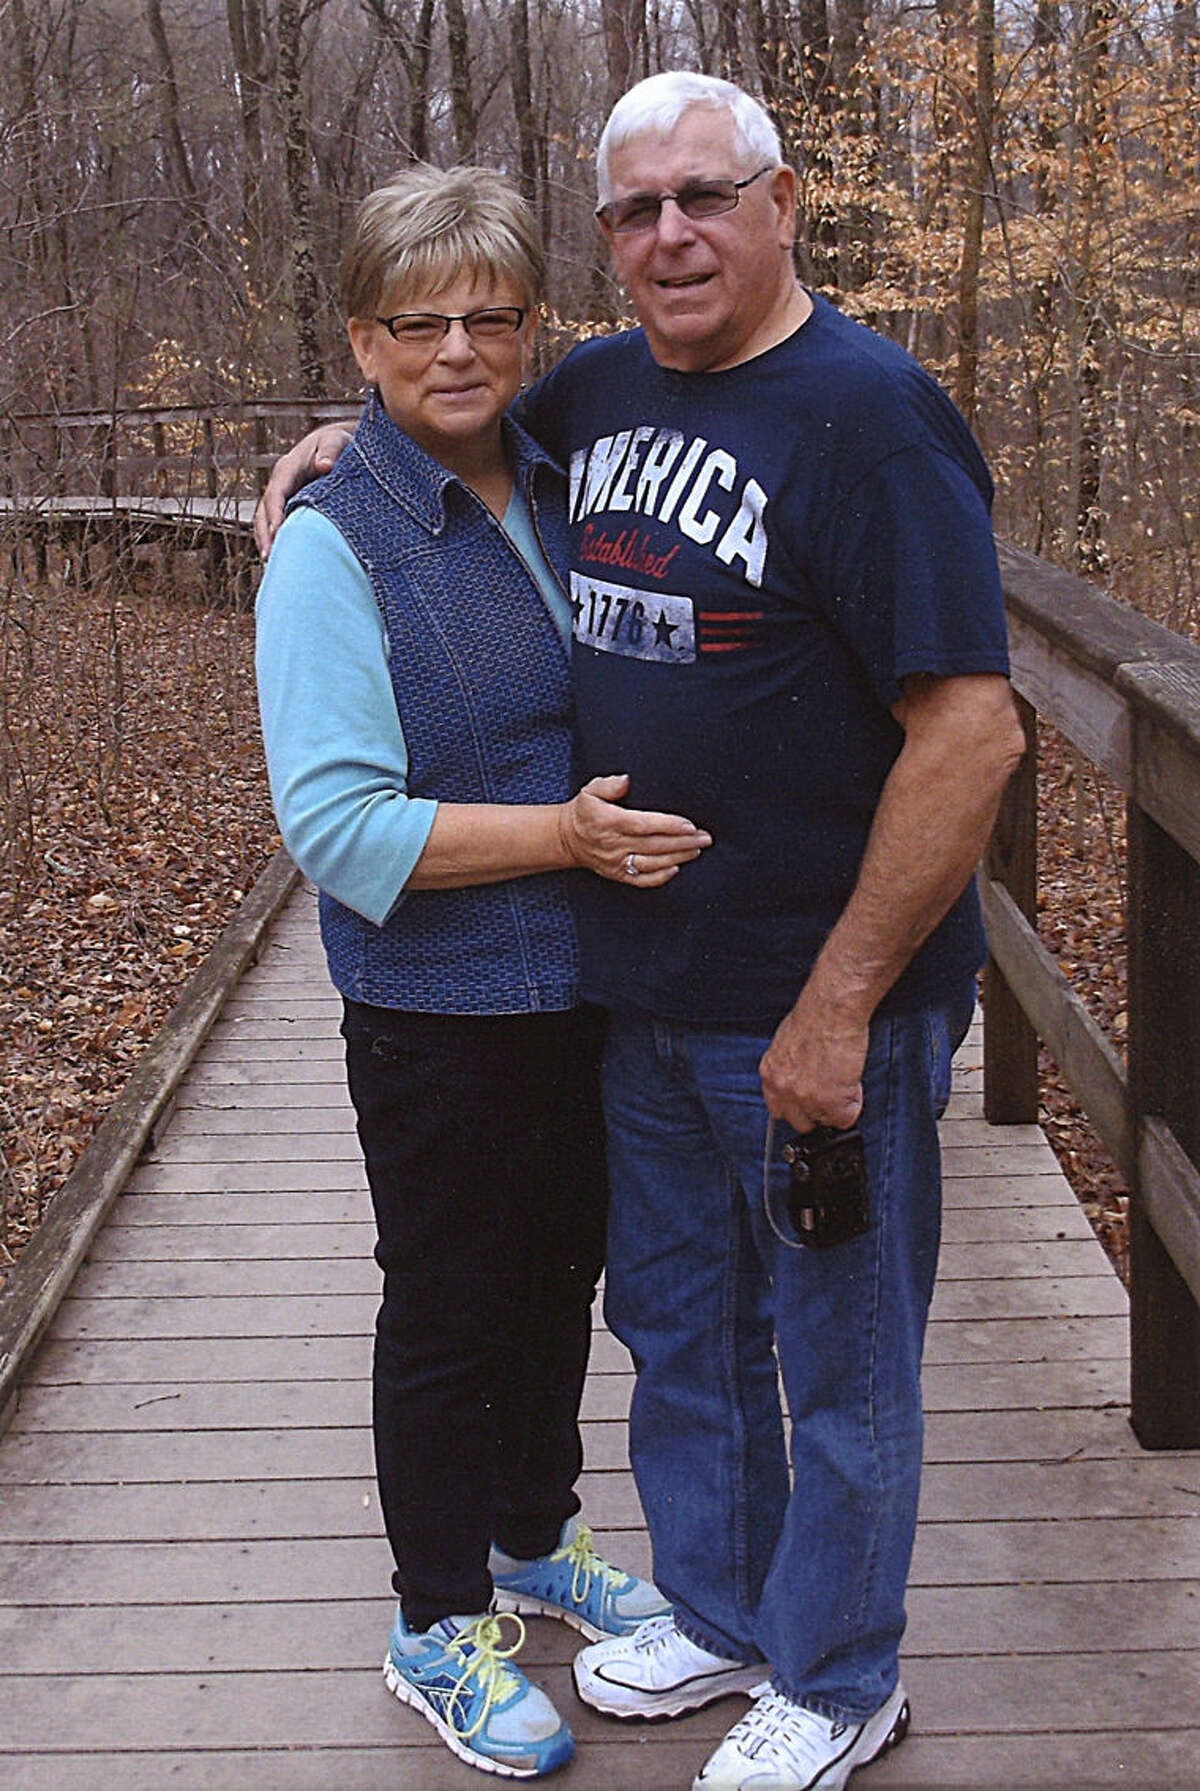 Larry Nielsen poses with his wife, Ethylene (Portice). They were married Aug. 15, 1997 in Saginaw. Larry's career in law enforcement began in 1973 and lasted until his retirement in April 2015.